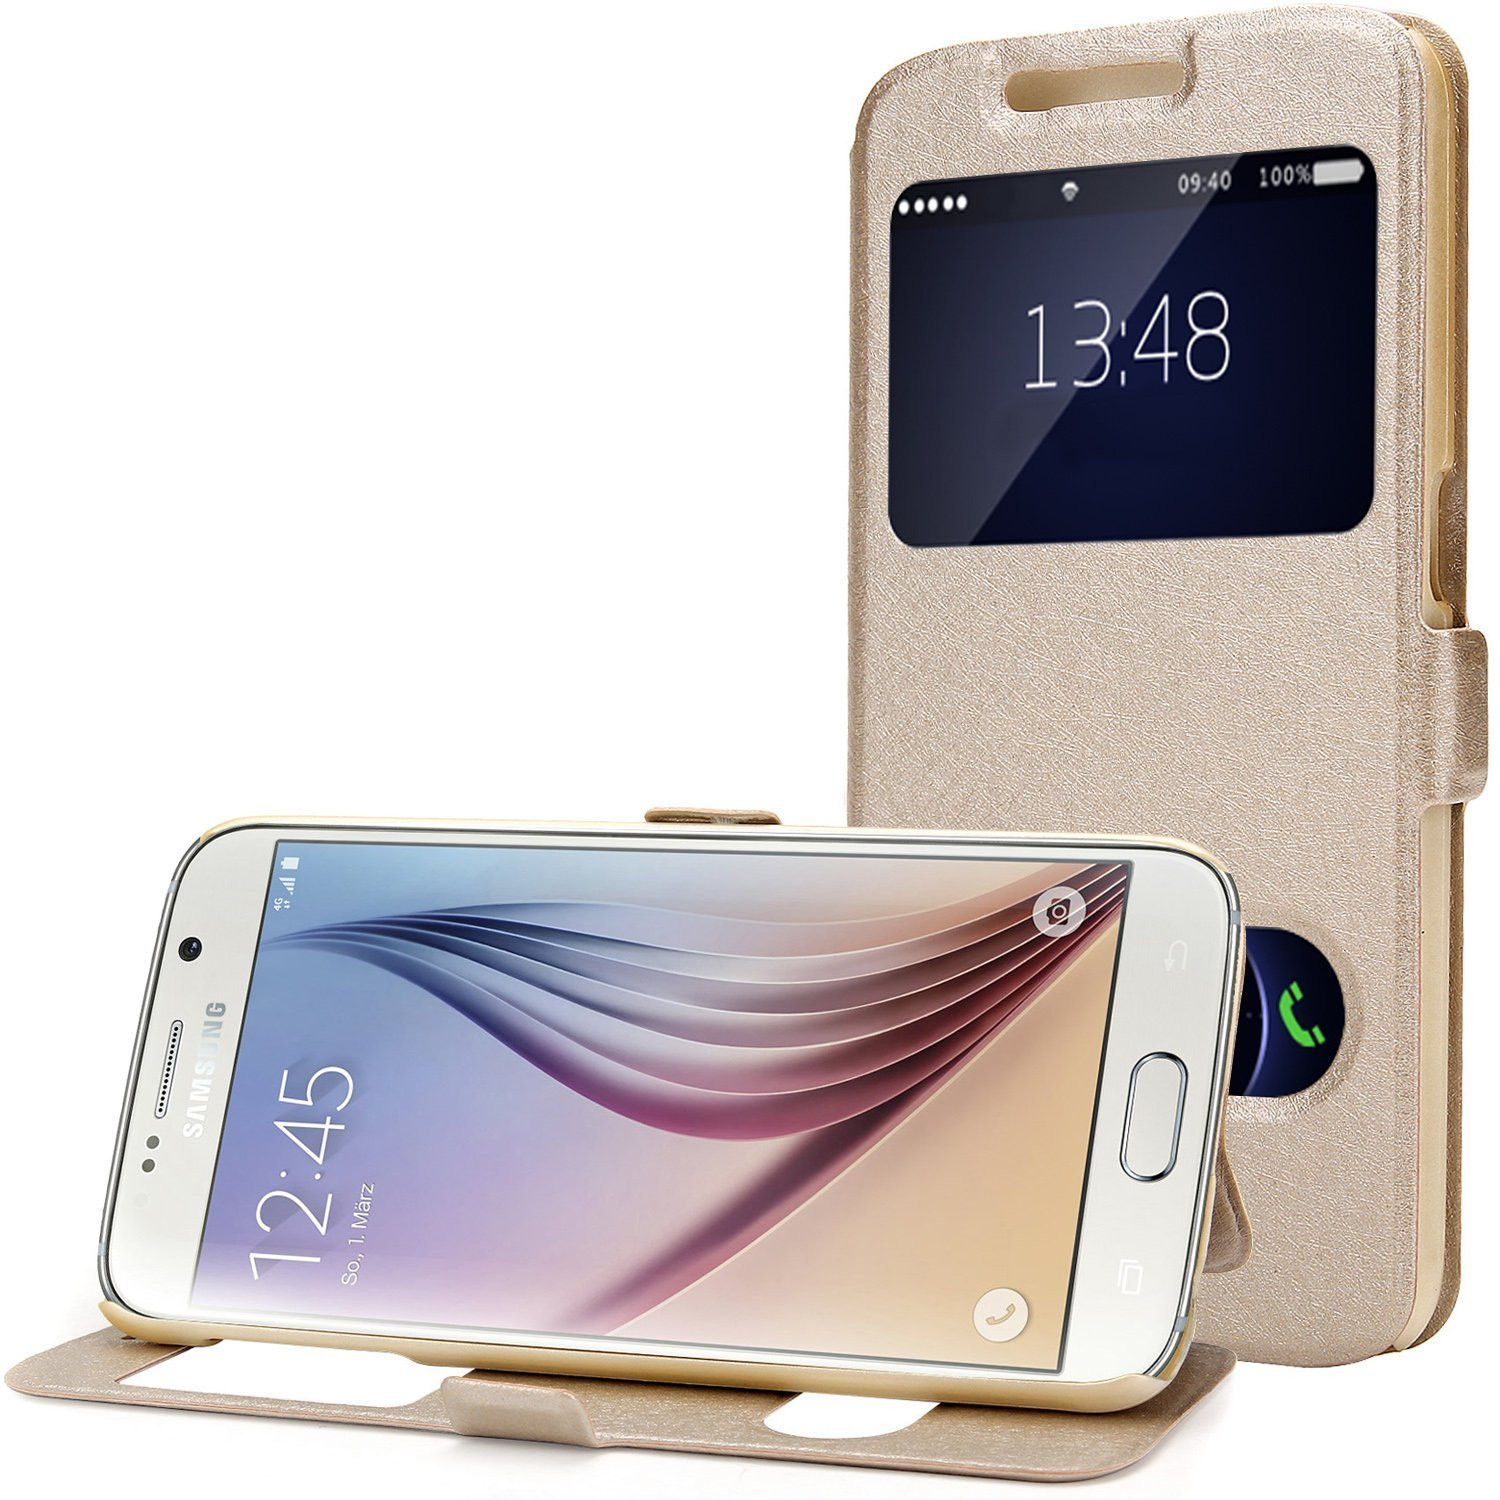 Galaxy S6 Case, EnGive Premium Slim Flip Imitation Leather Cover for Samsung Galaxy S6 G920 (Gold)